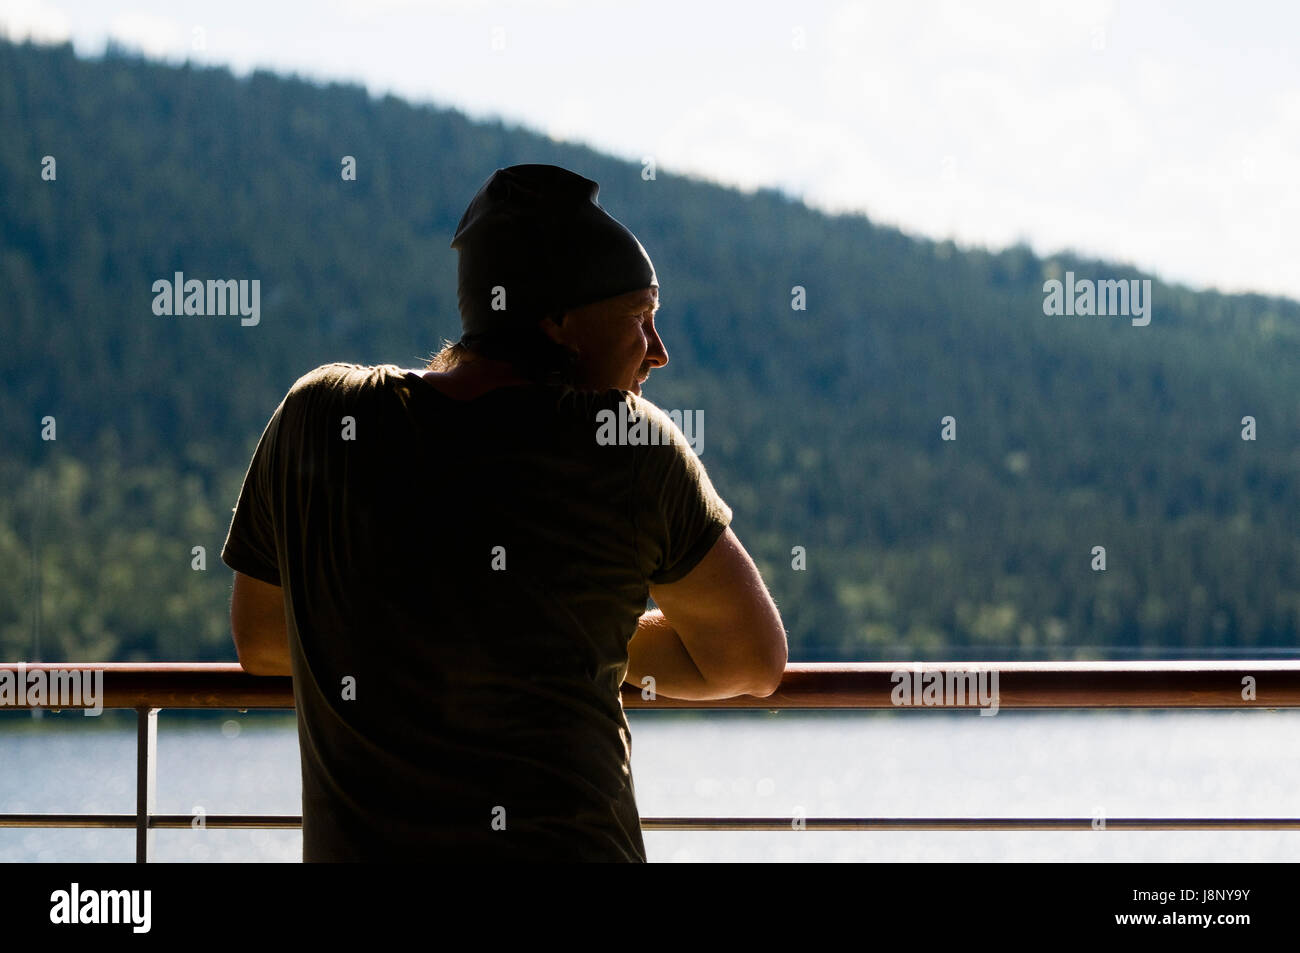 Man leaning on railing Banque D'Images